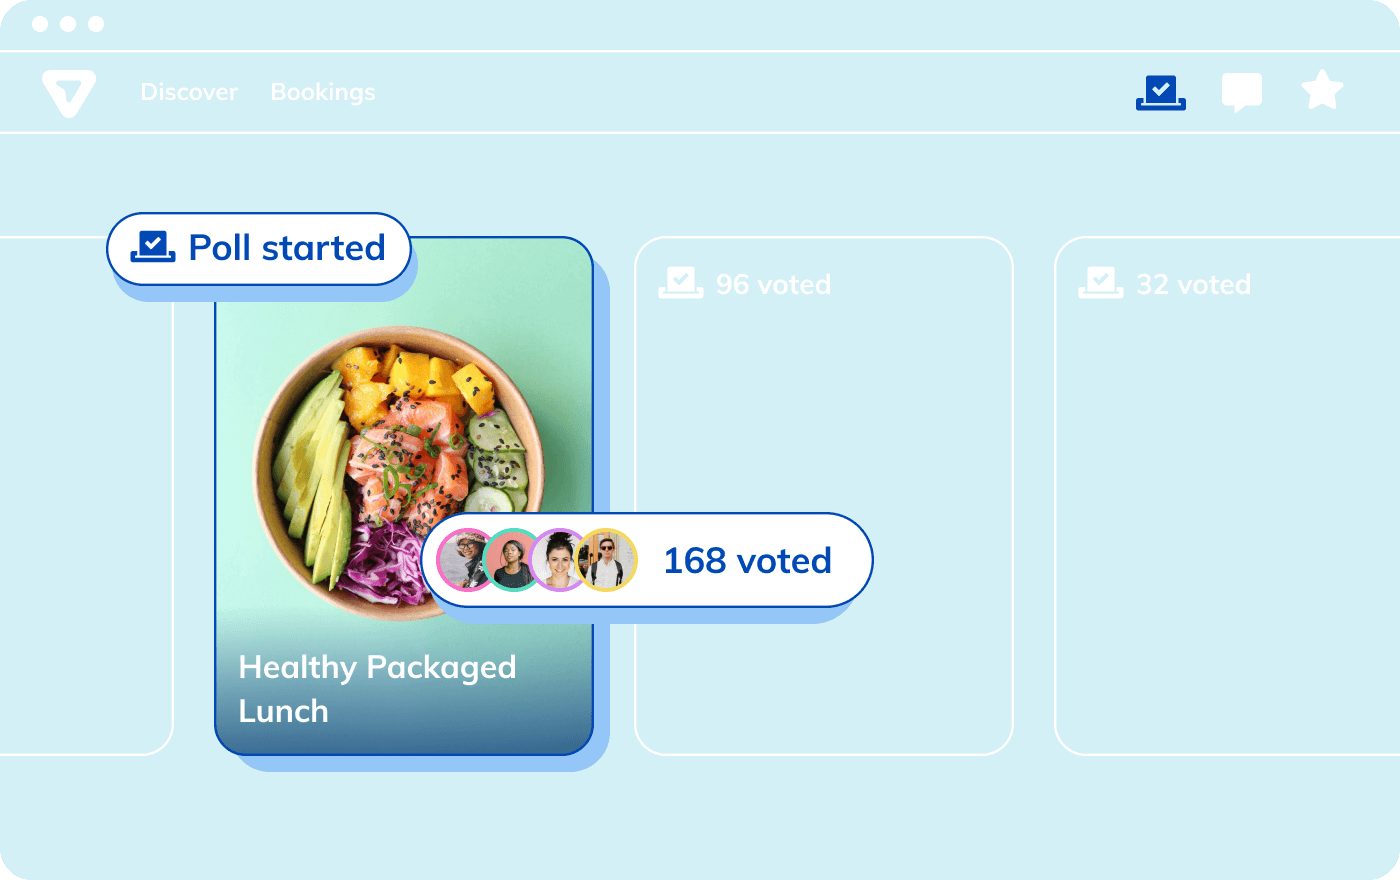 Screenshot of the polling feature on the Thriver marketplace. Poll created by HR manager for healthy packaged lunch